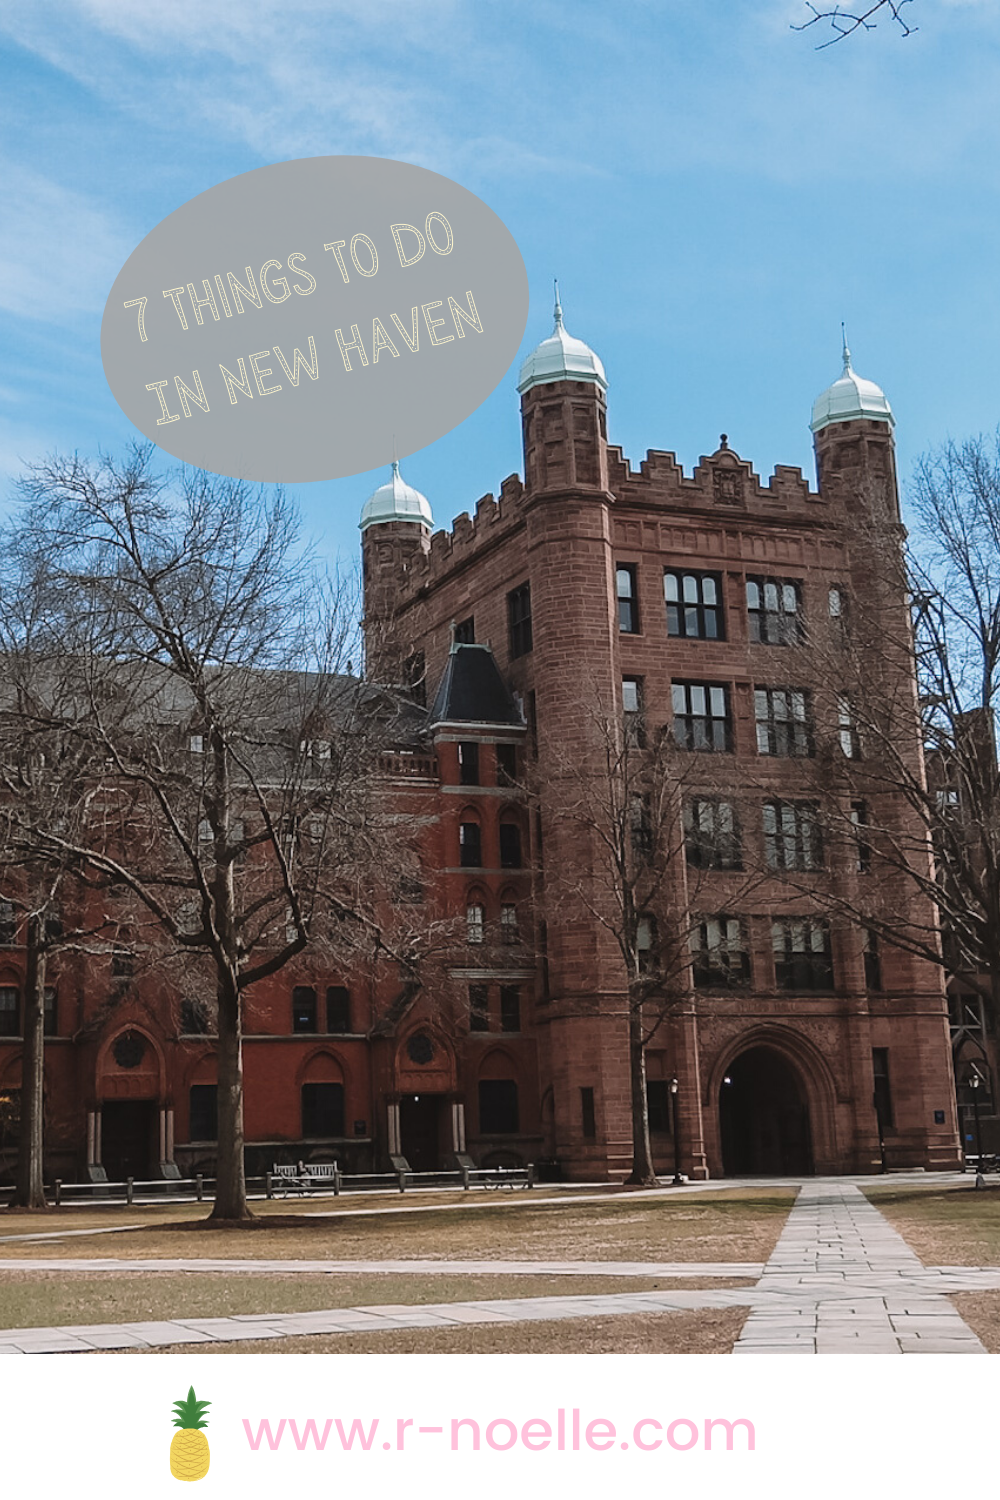 Seven things to do in New Haven Connecticut! Here are things to do in New Haven. Explore New Haven Connecticut for the day!